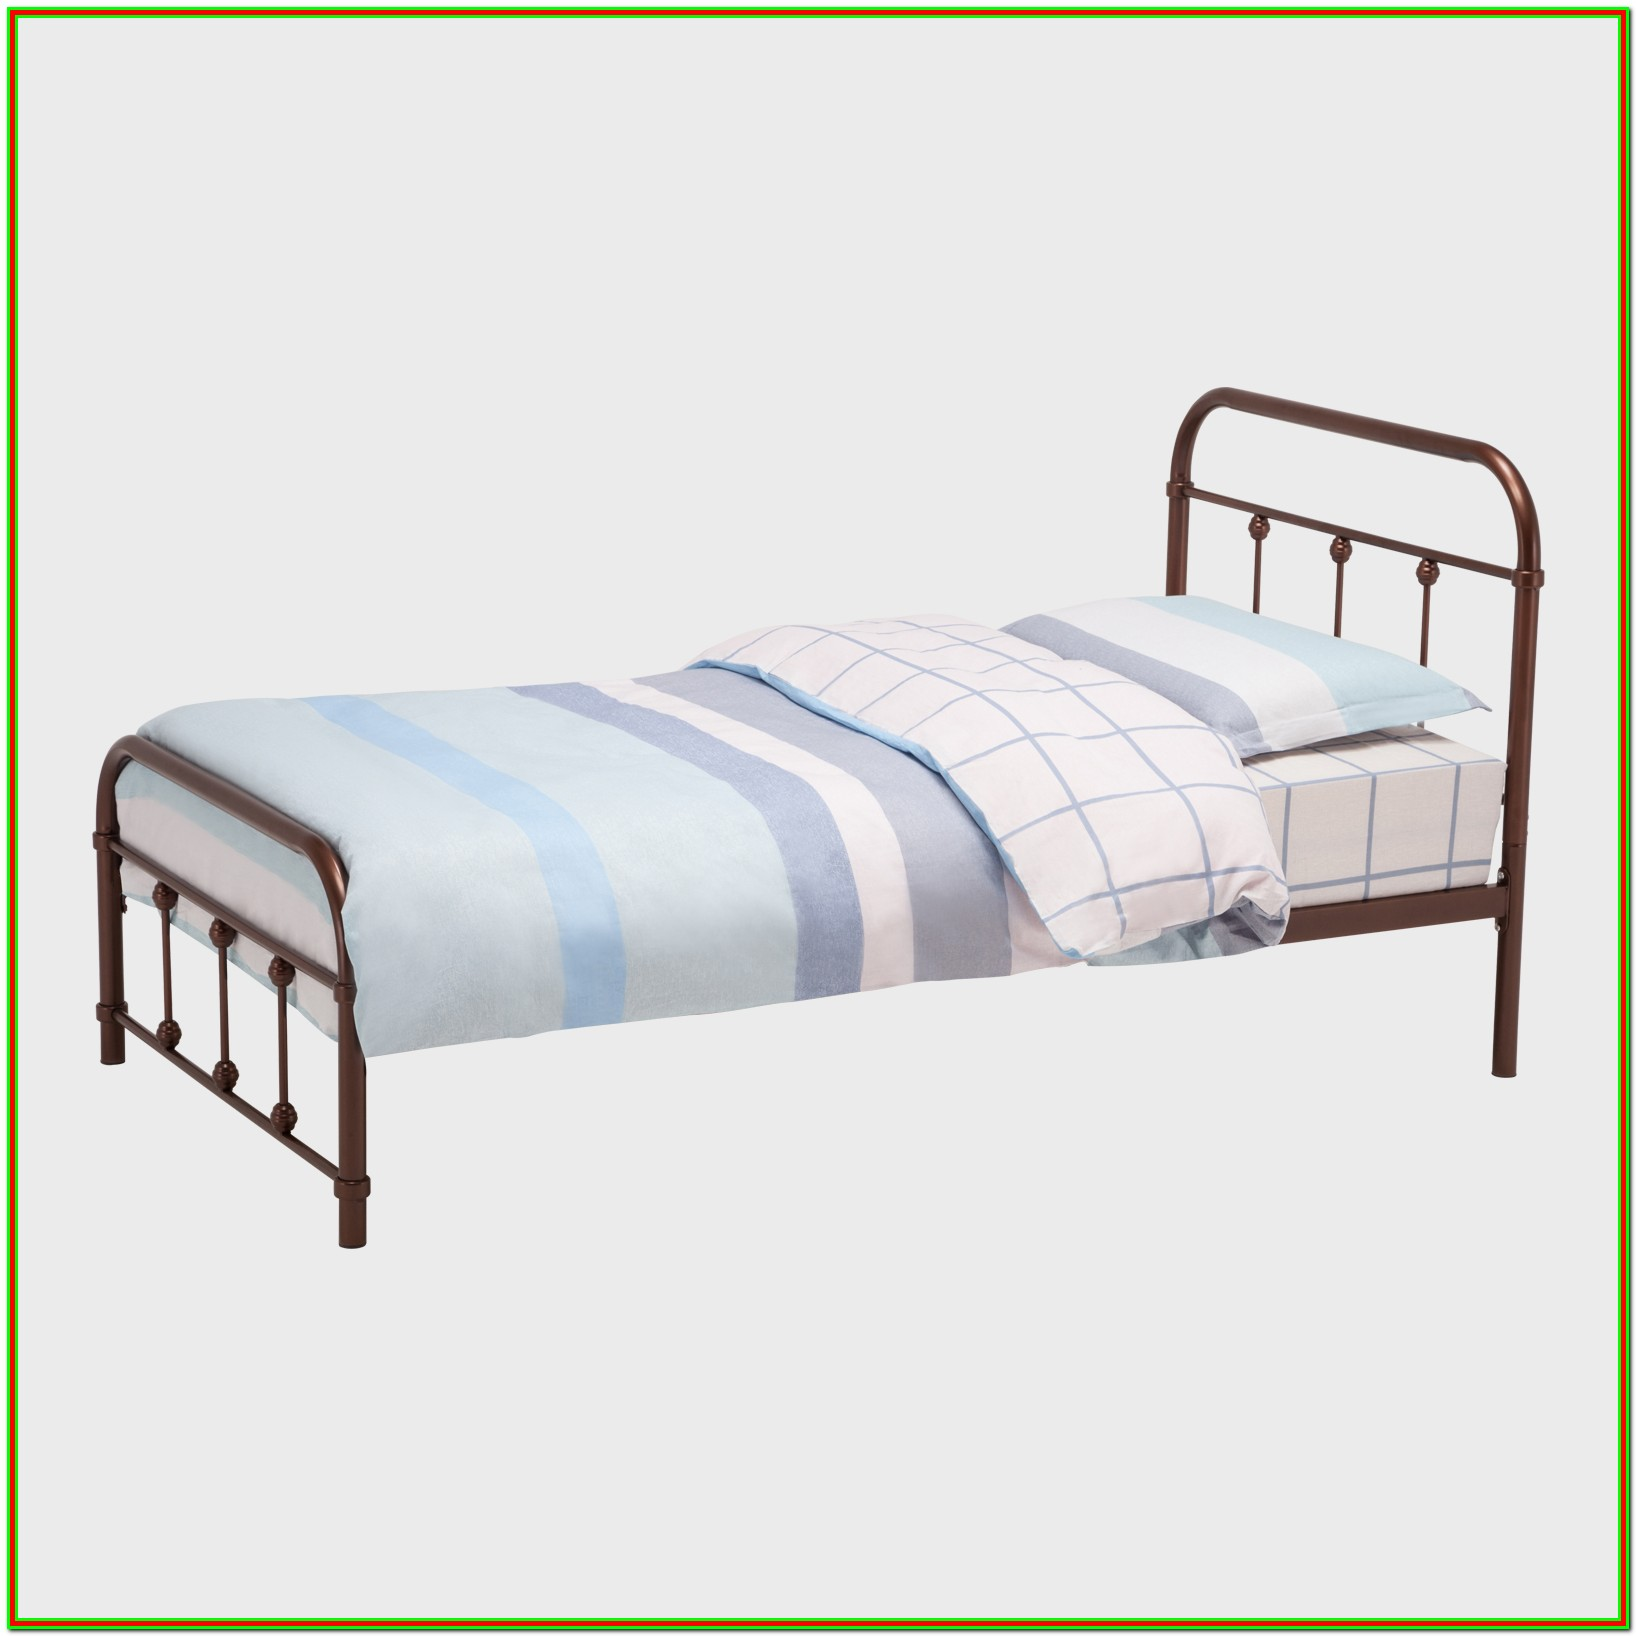 Full Bed Frame With Headboard And Footboard